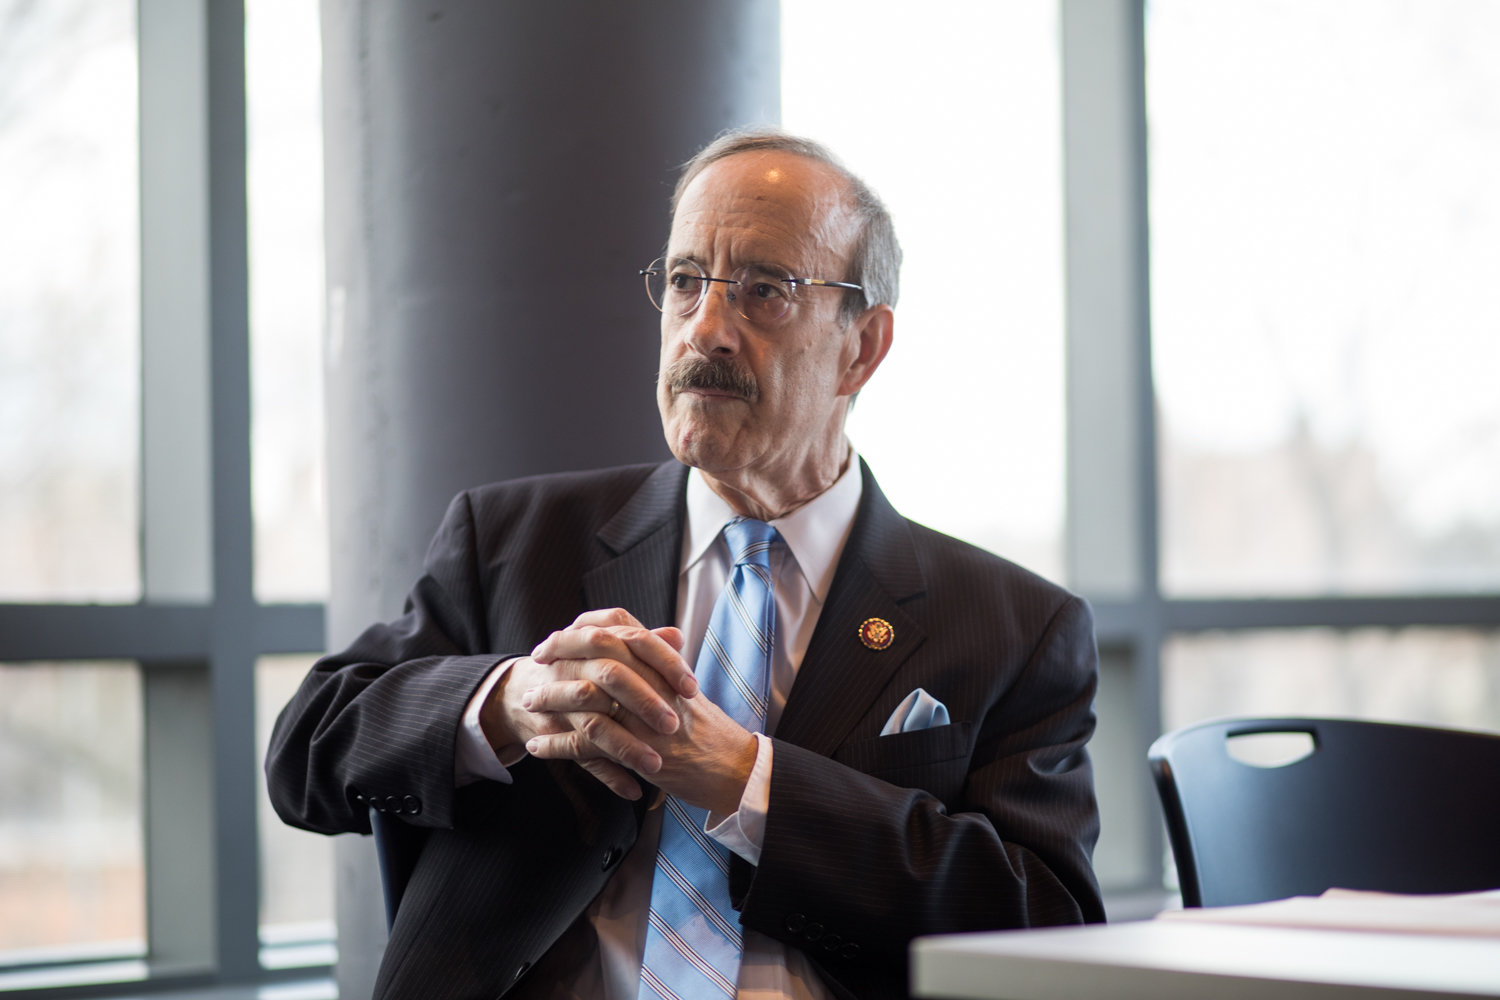 U.S. Rep. Eliot Engel, seen here at a Manhattan College event in April, publicly expressed support for the impeachment inquiry in late July.